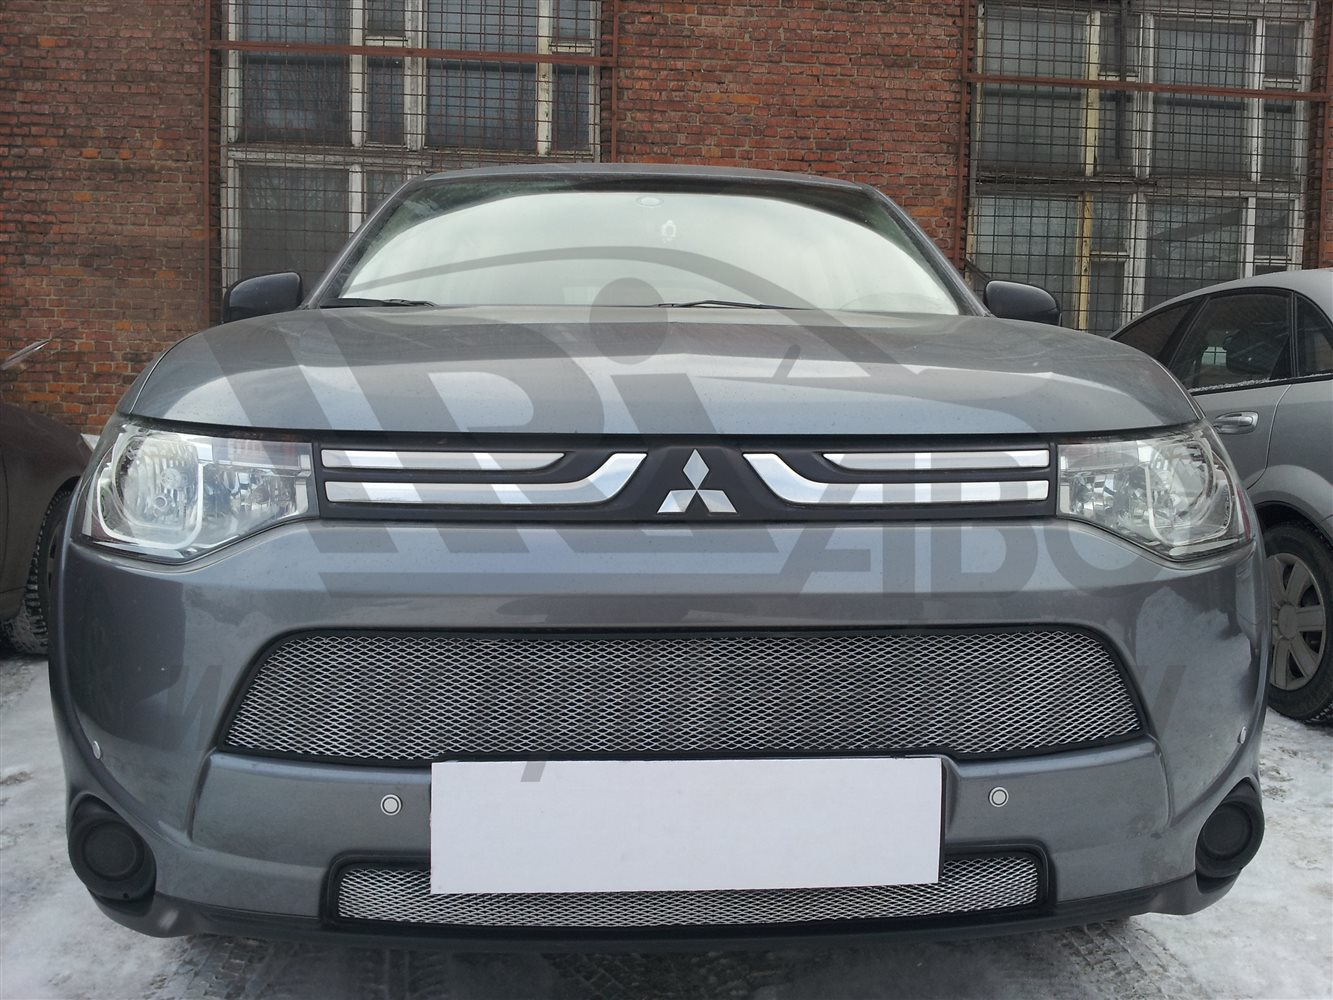 'Защита радиатора Mitsubishi Outlander 2012-2015 (Chrome)'